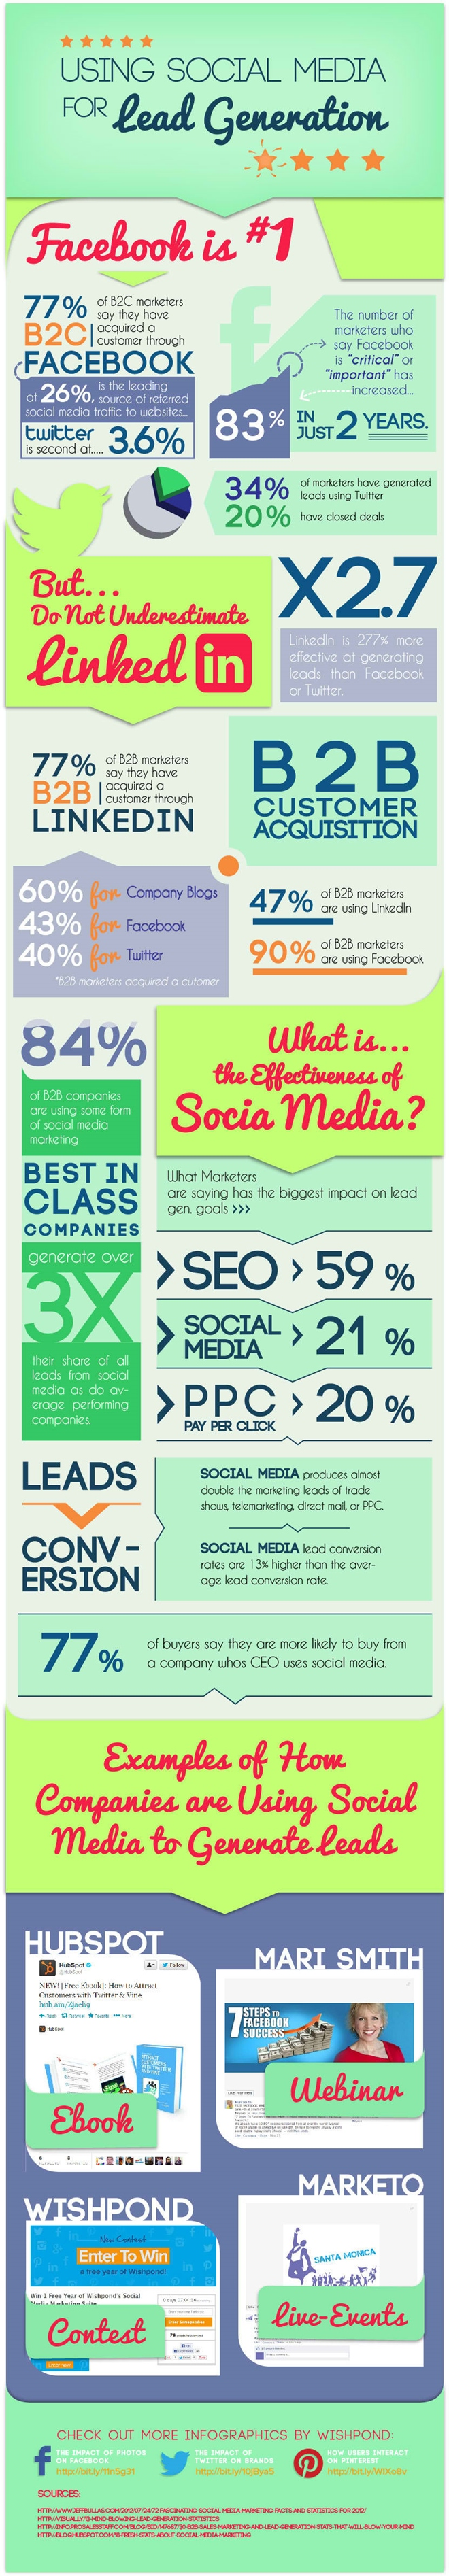 Role of social media in lead generation